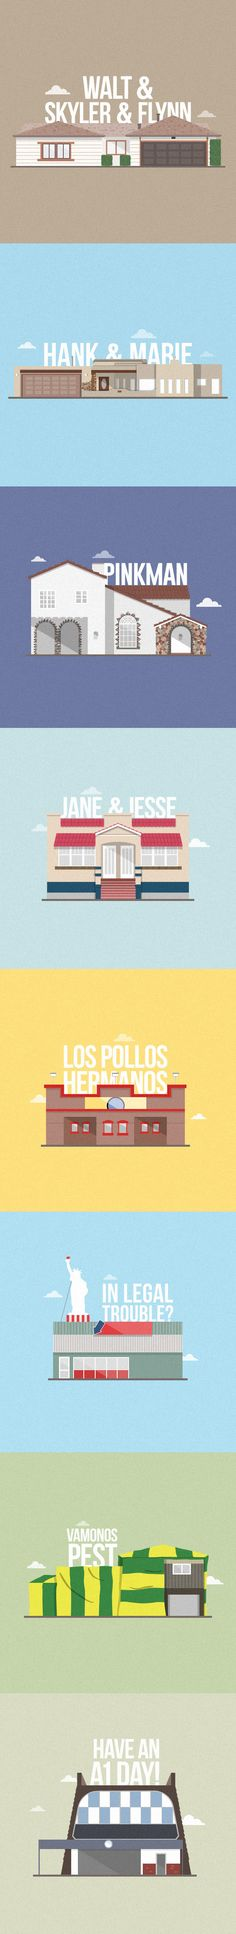 Breaking Bad Houses on Behance                                                                                                                                                                                 More